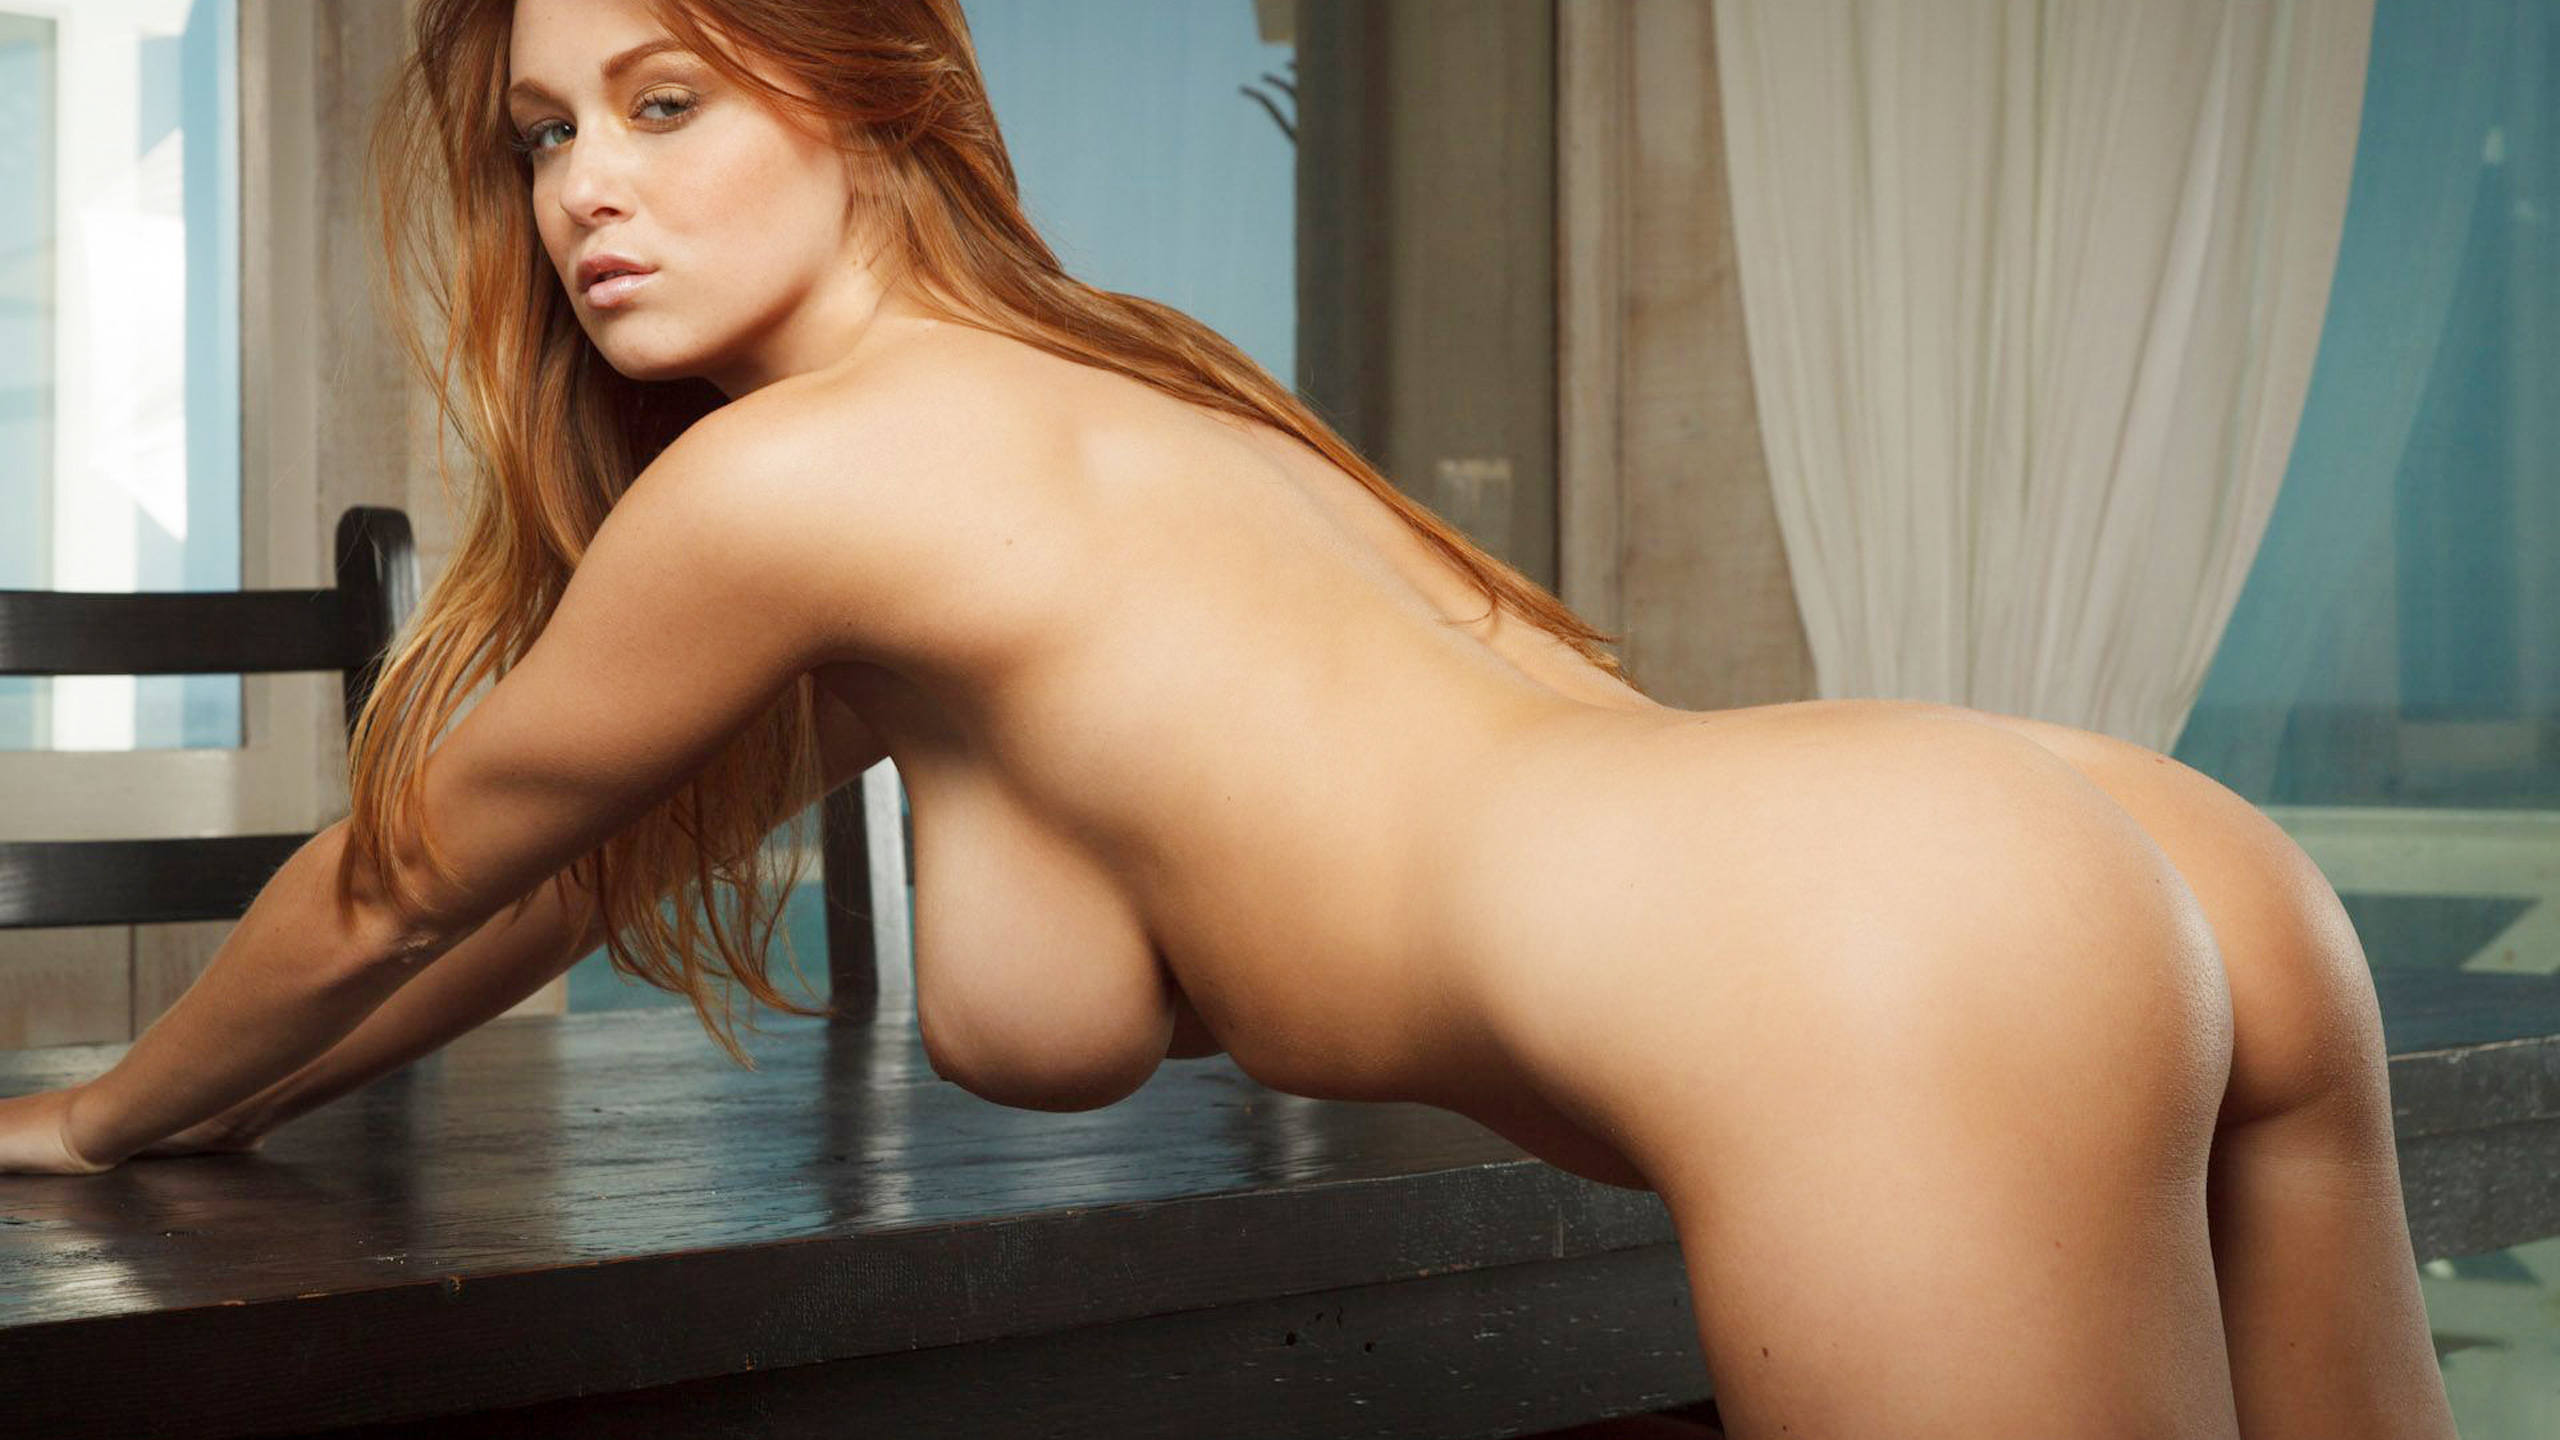 nude-pics-of-import-model